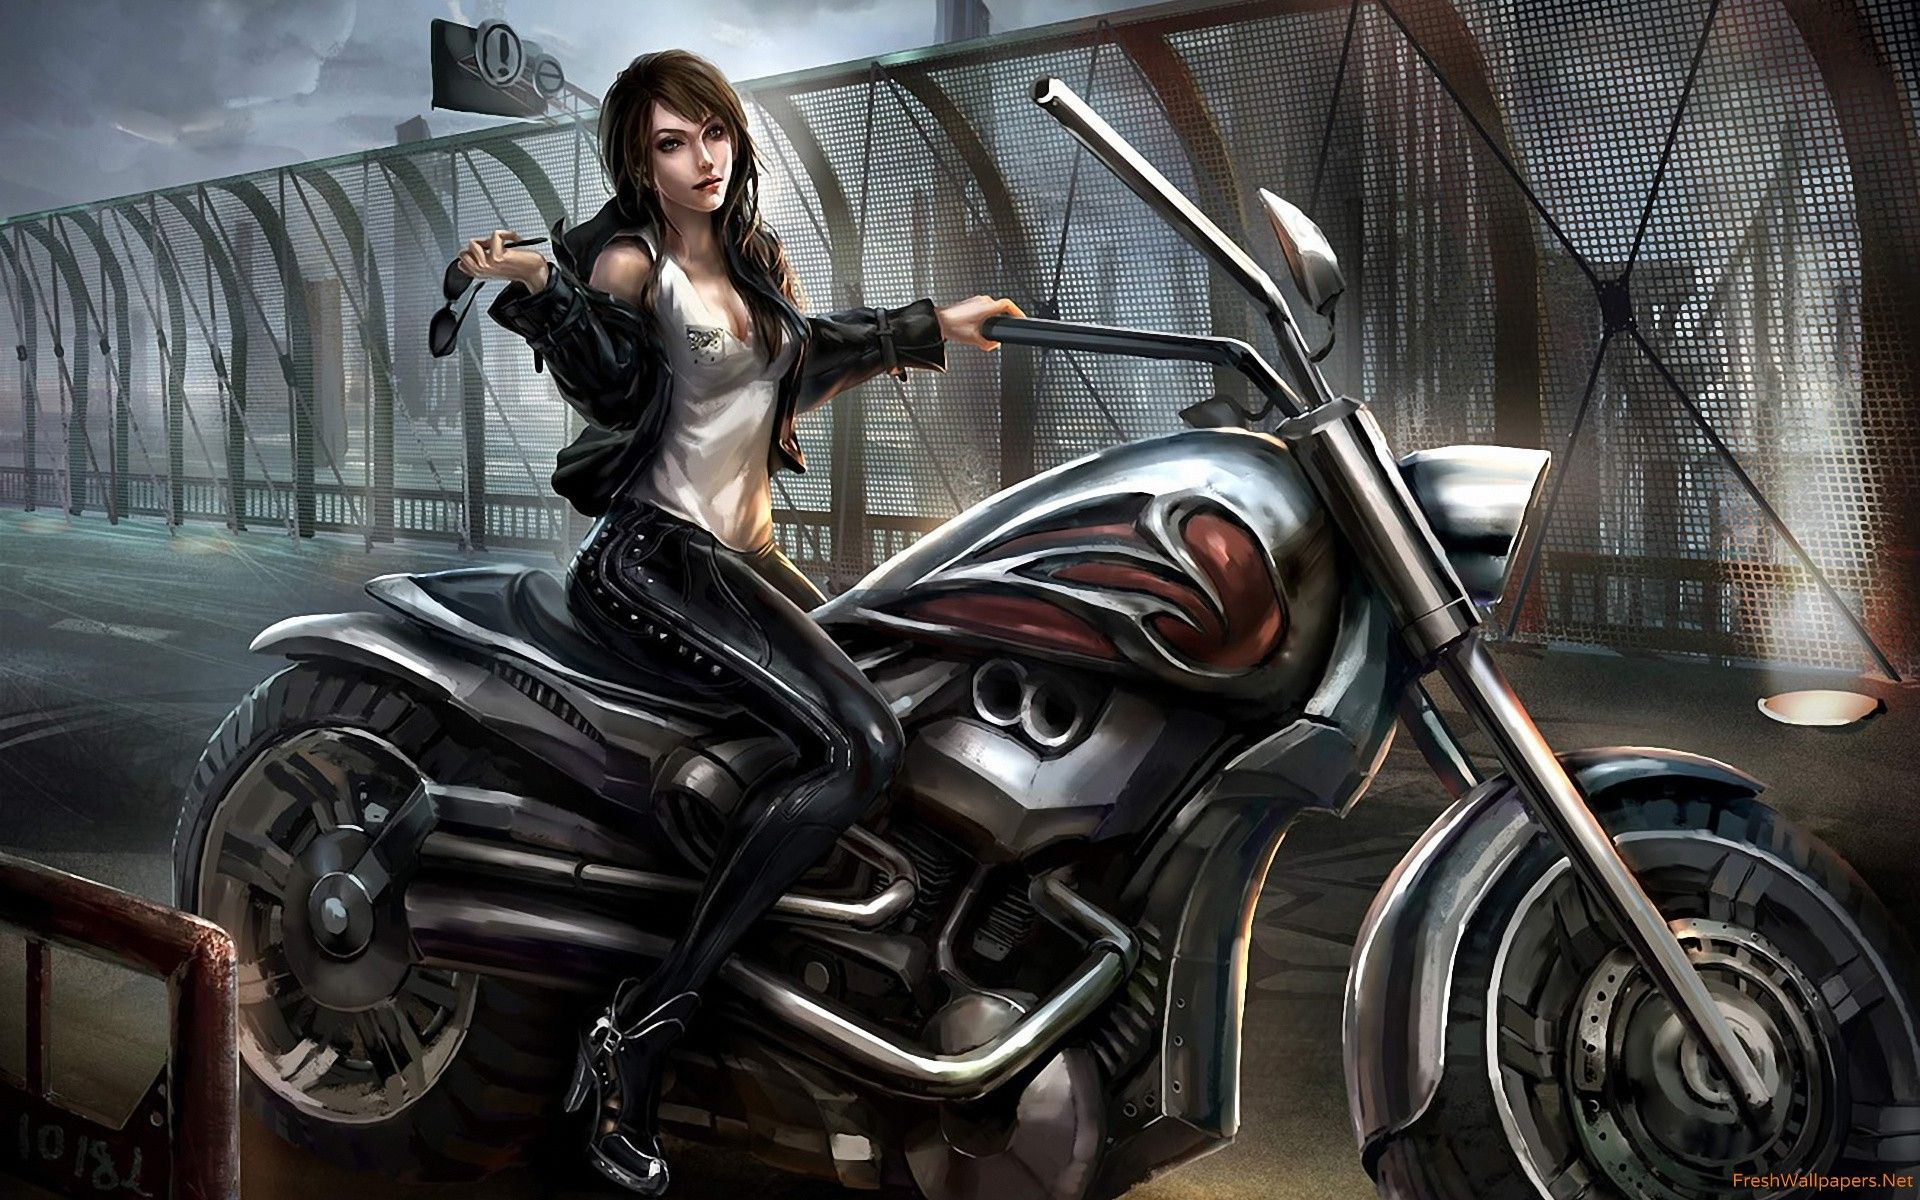 1920x1200 motorcycle girl wallpapers | Freshwallpapers